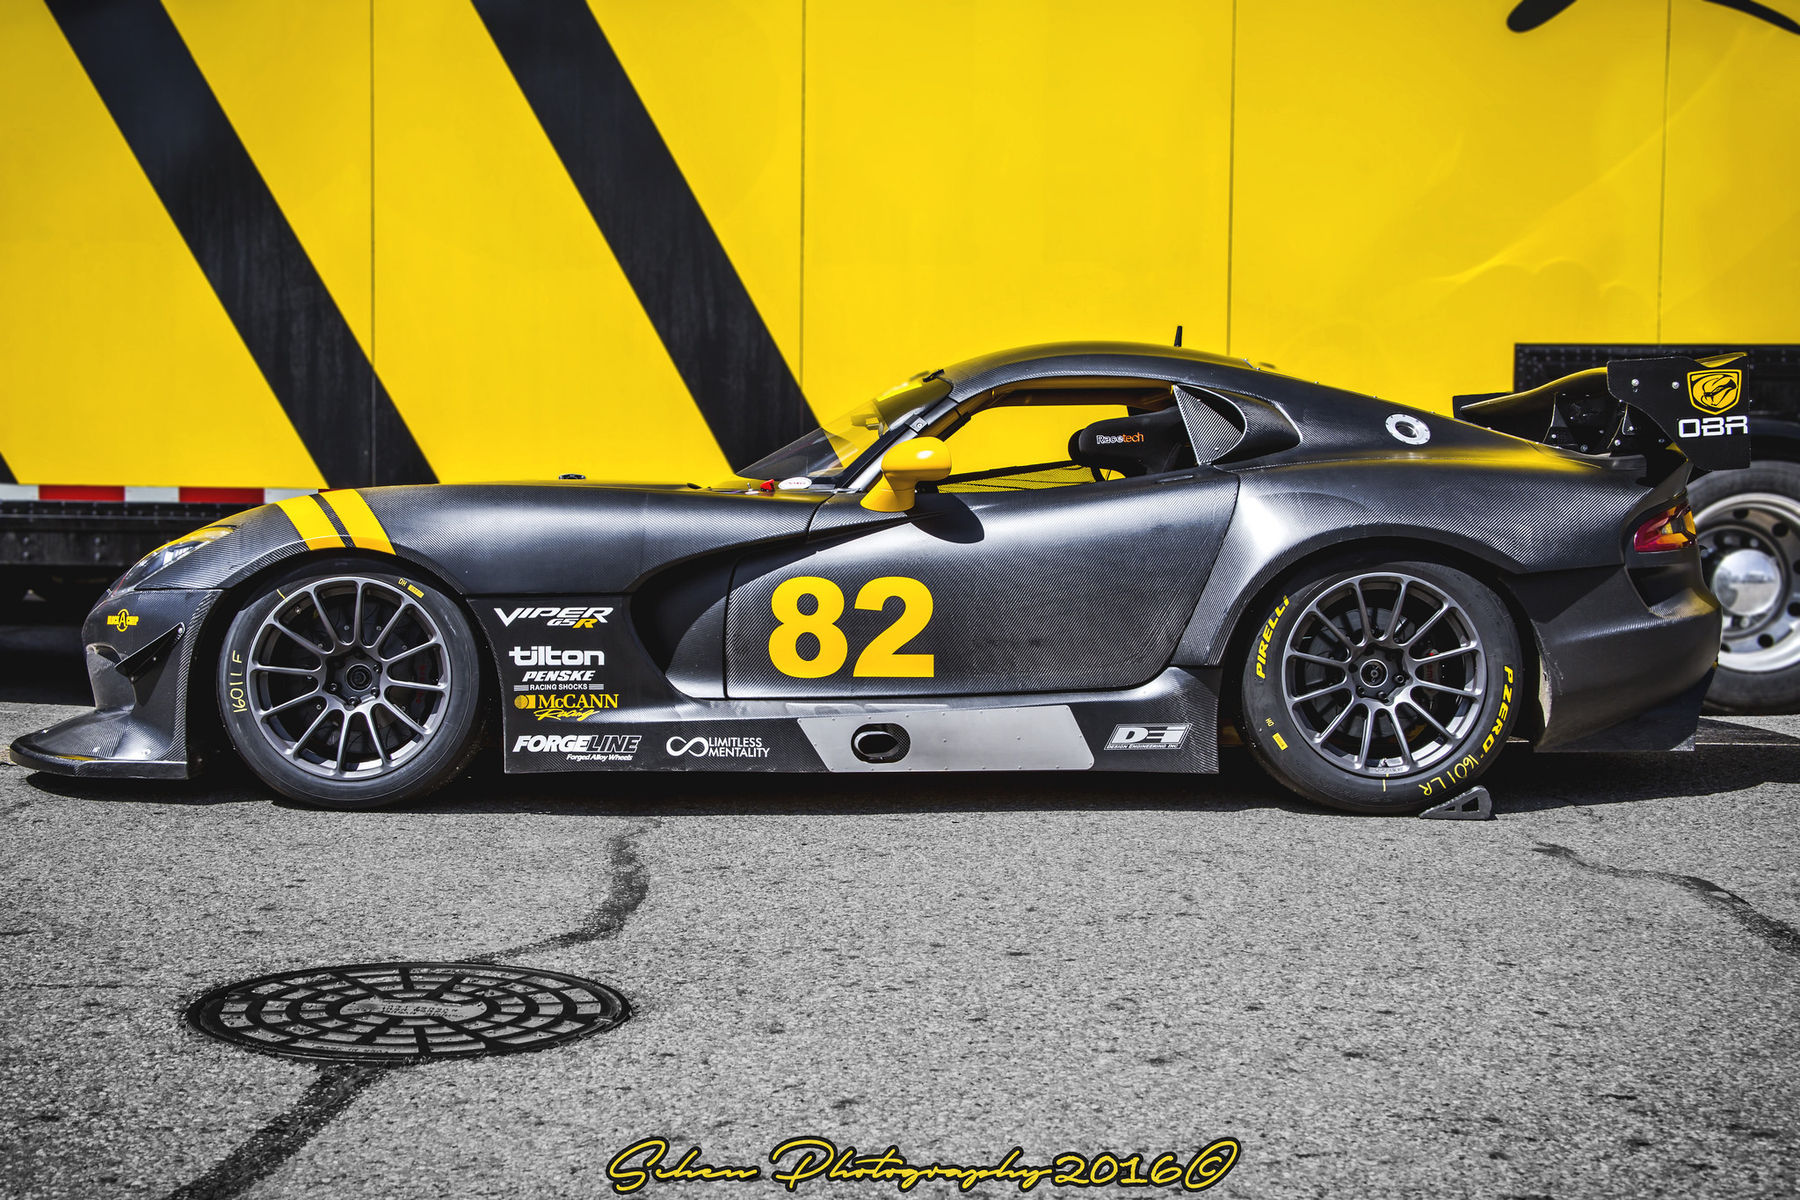 2014 Dodge Viper | McCann Racing's Carbon Fiber Dodge Viper G5R on Forgeline One Piece Forged Monoblock GTD1-Viper Wheels